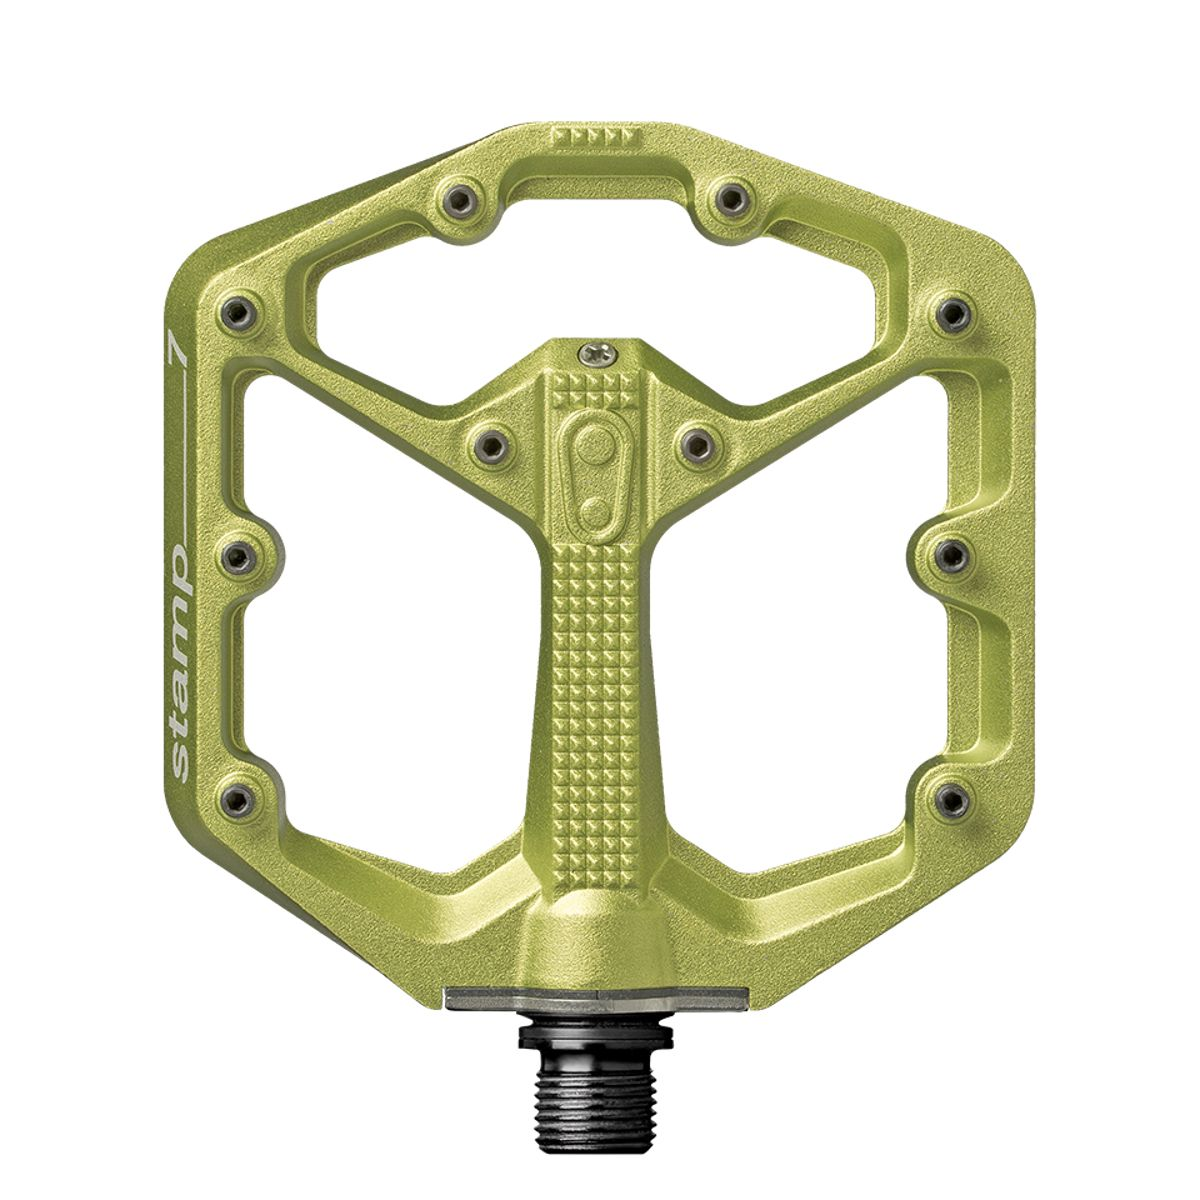 Stamp 7 LE Limited Edition MTB pedals